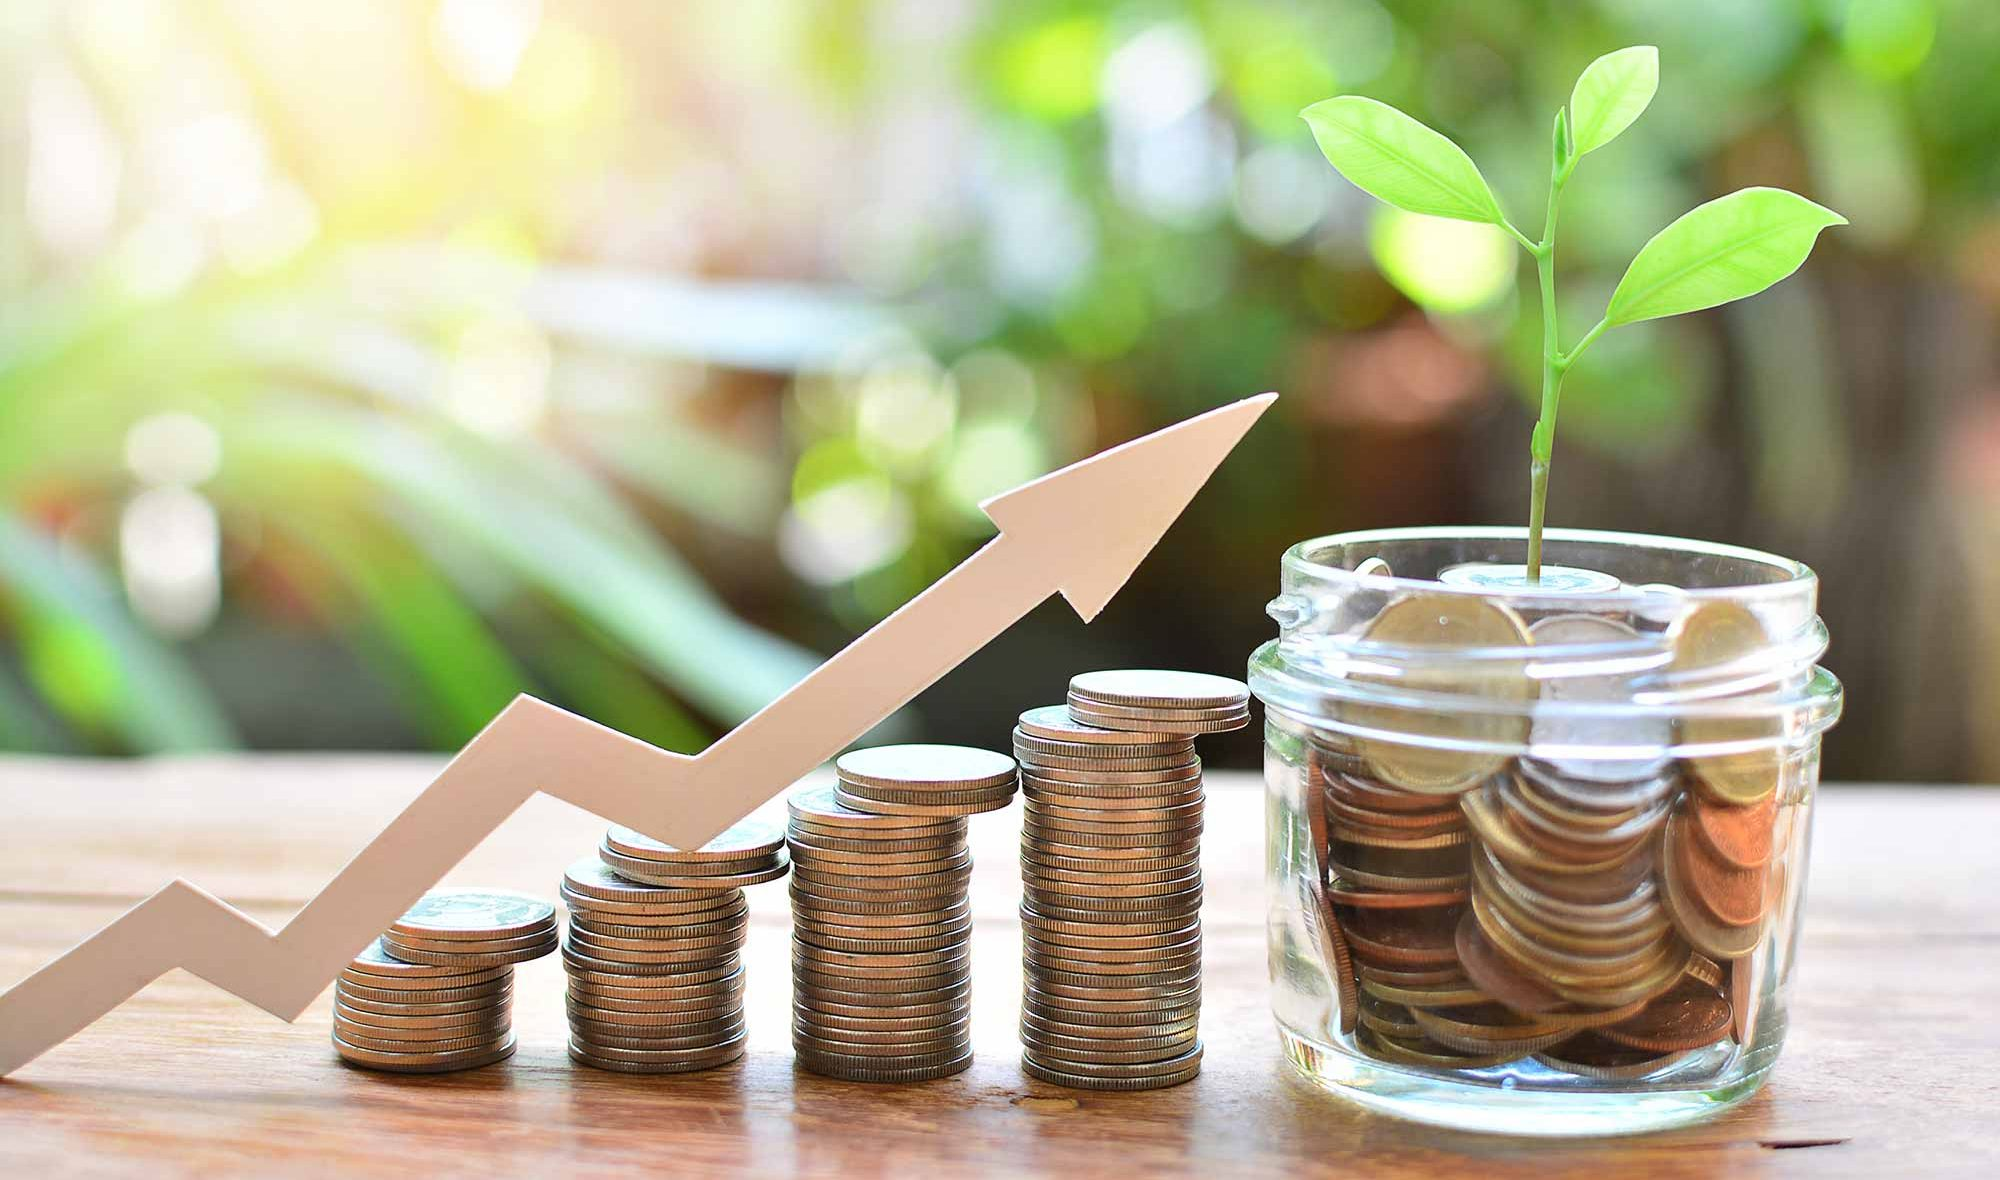 Cut-off time for mutual funds